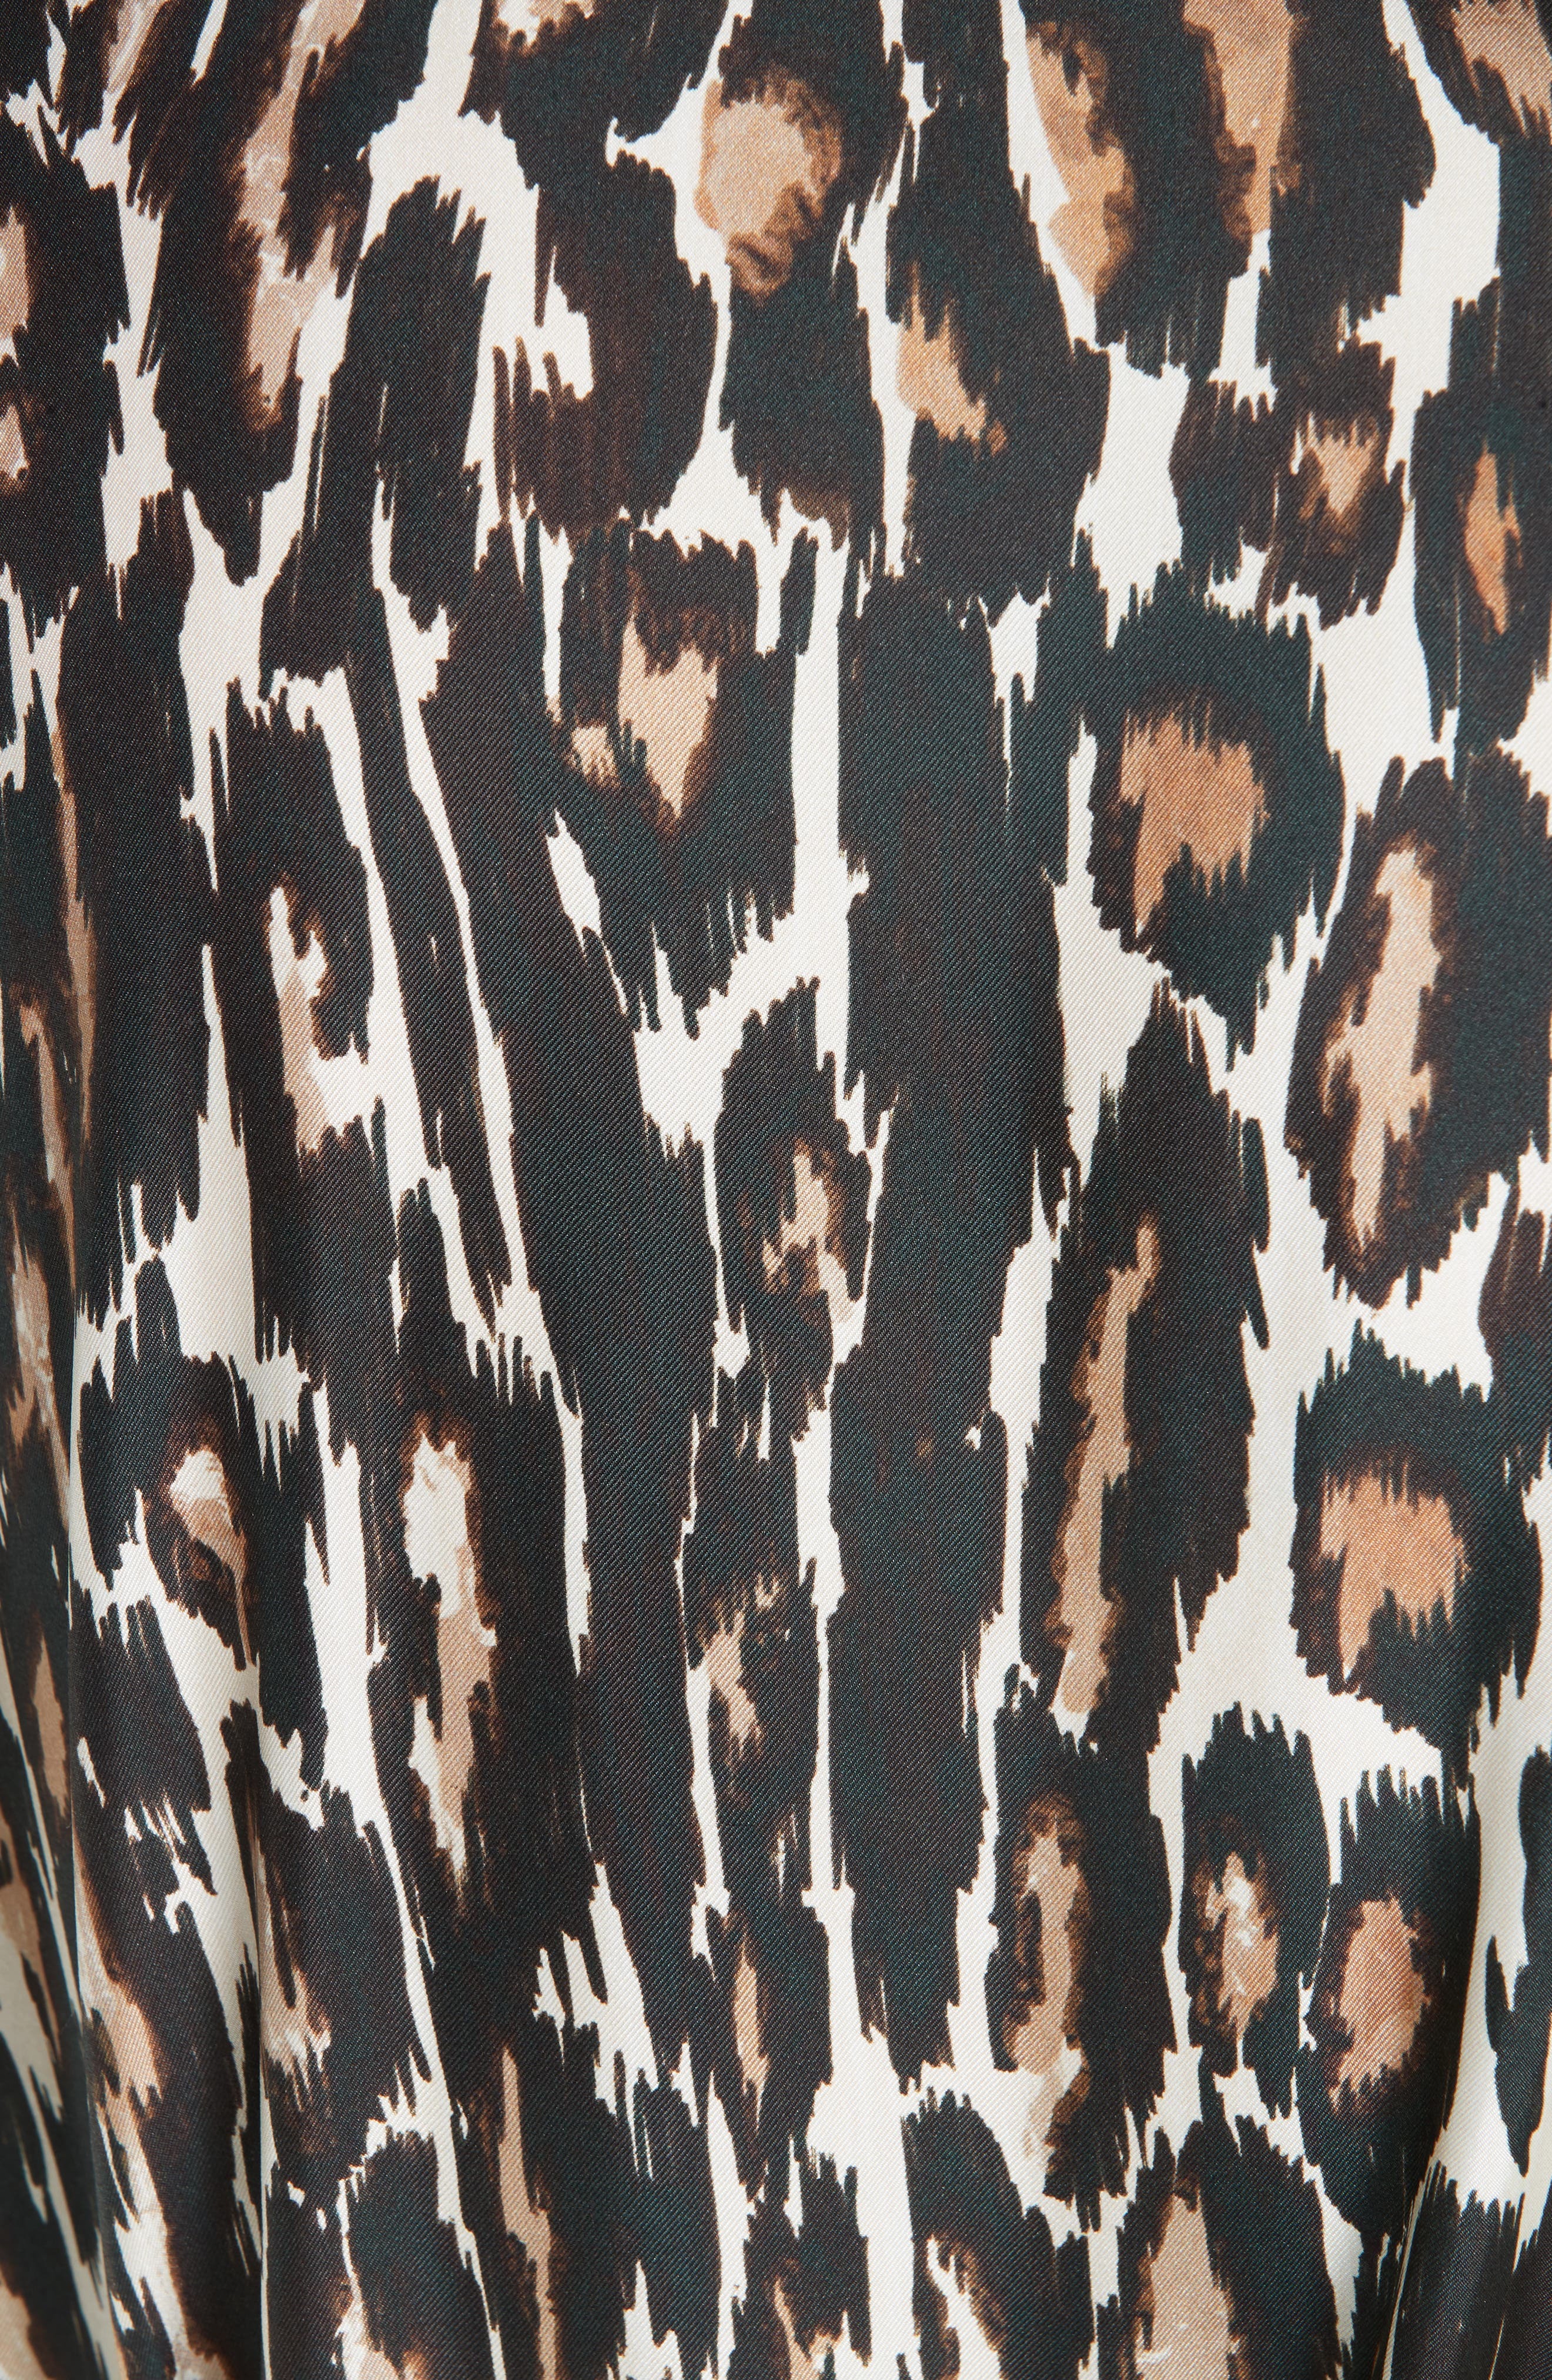 Leopard Print Silk Twill Blouse,                             Alternate thumbnail 6, color,                             IVORY BROWN BLACK BEIGE